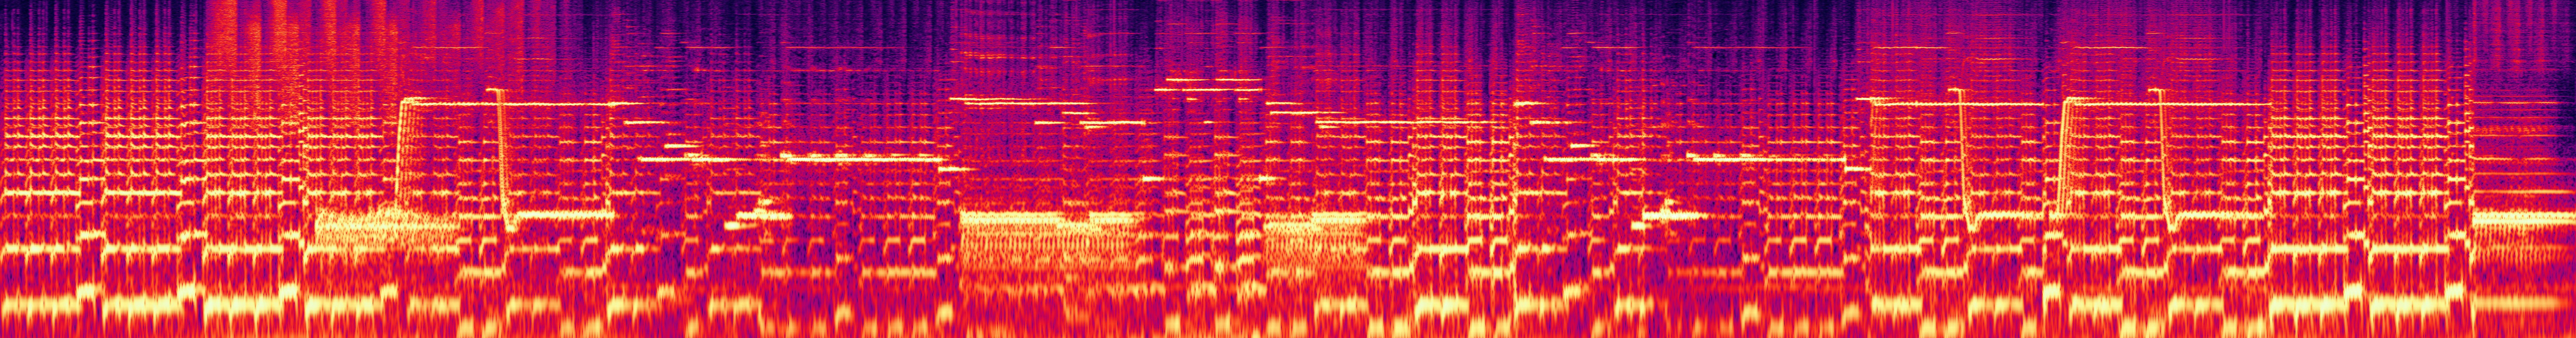 Doctor Who - Spectrogram.jpg